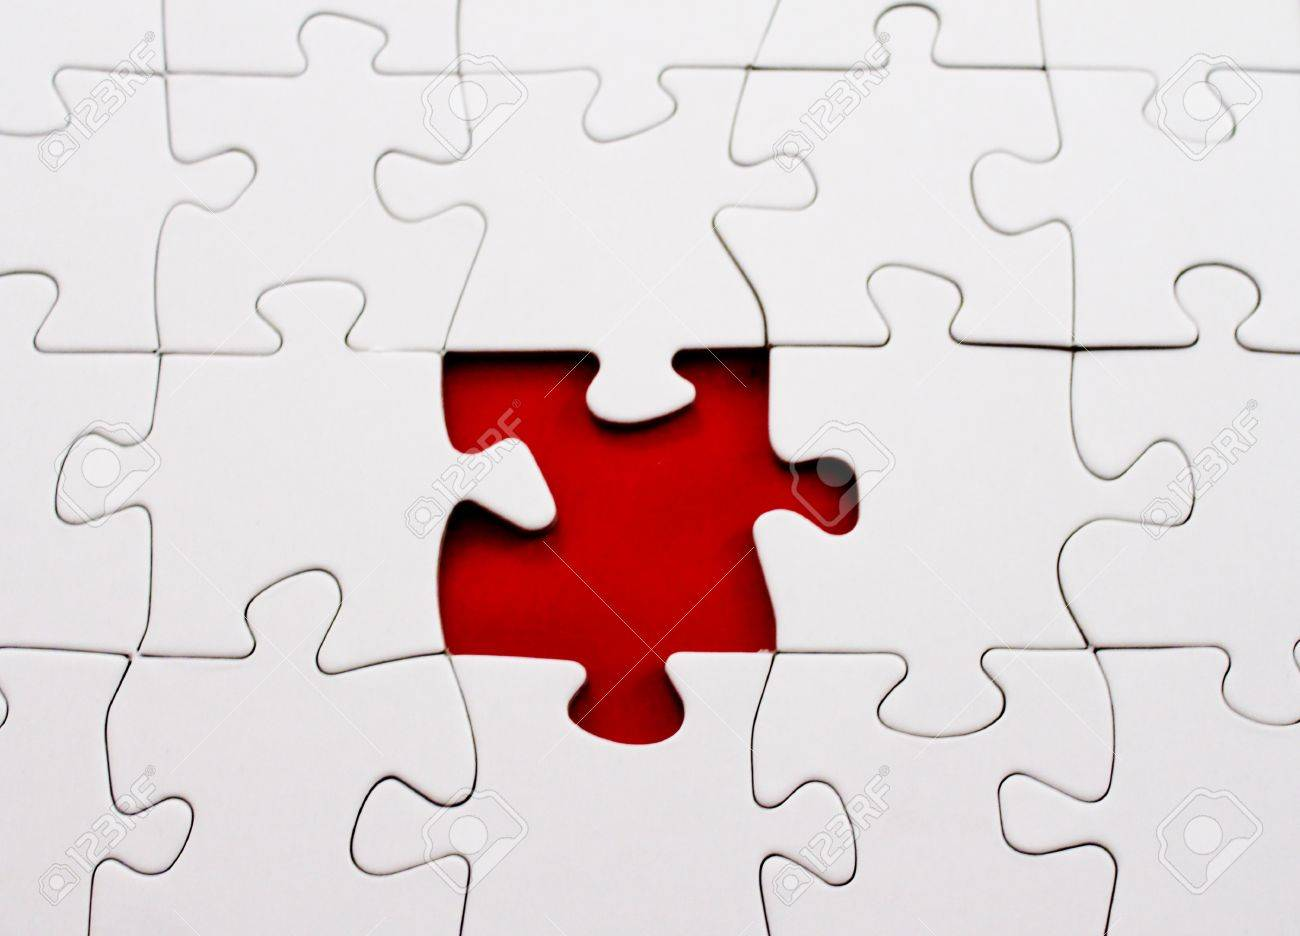 Blank Jigsaw Puzzle Missing Piece In Red Stock Photo